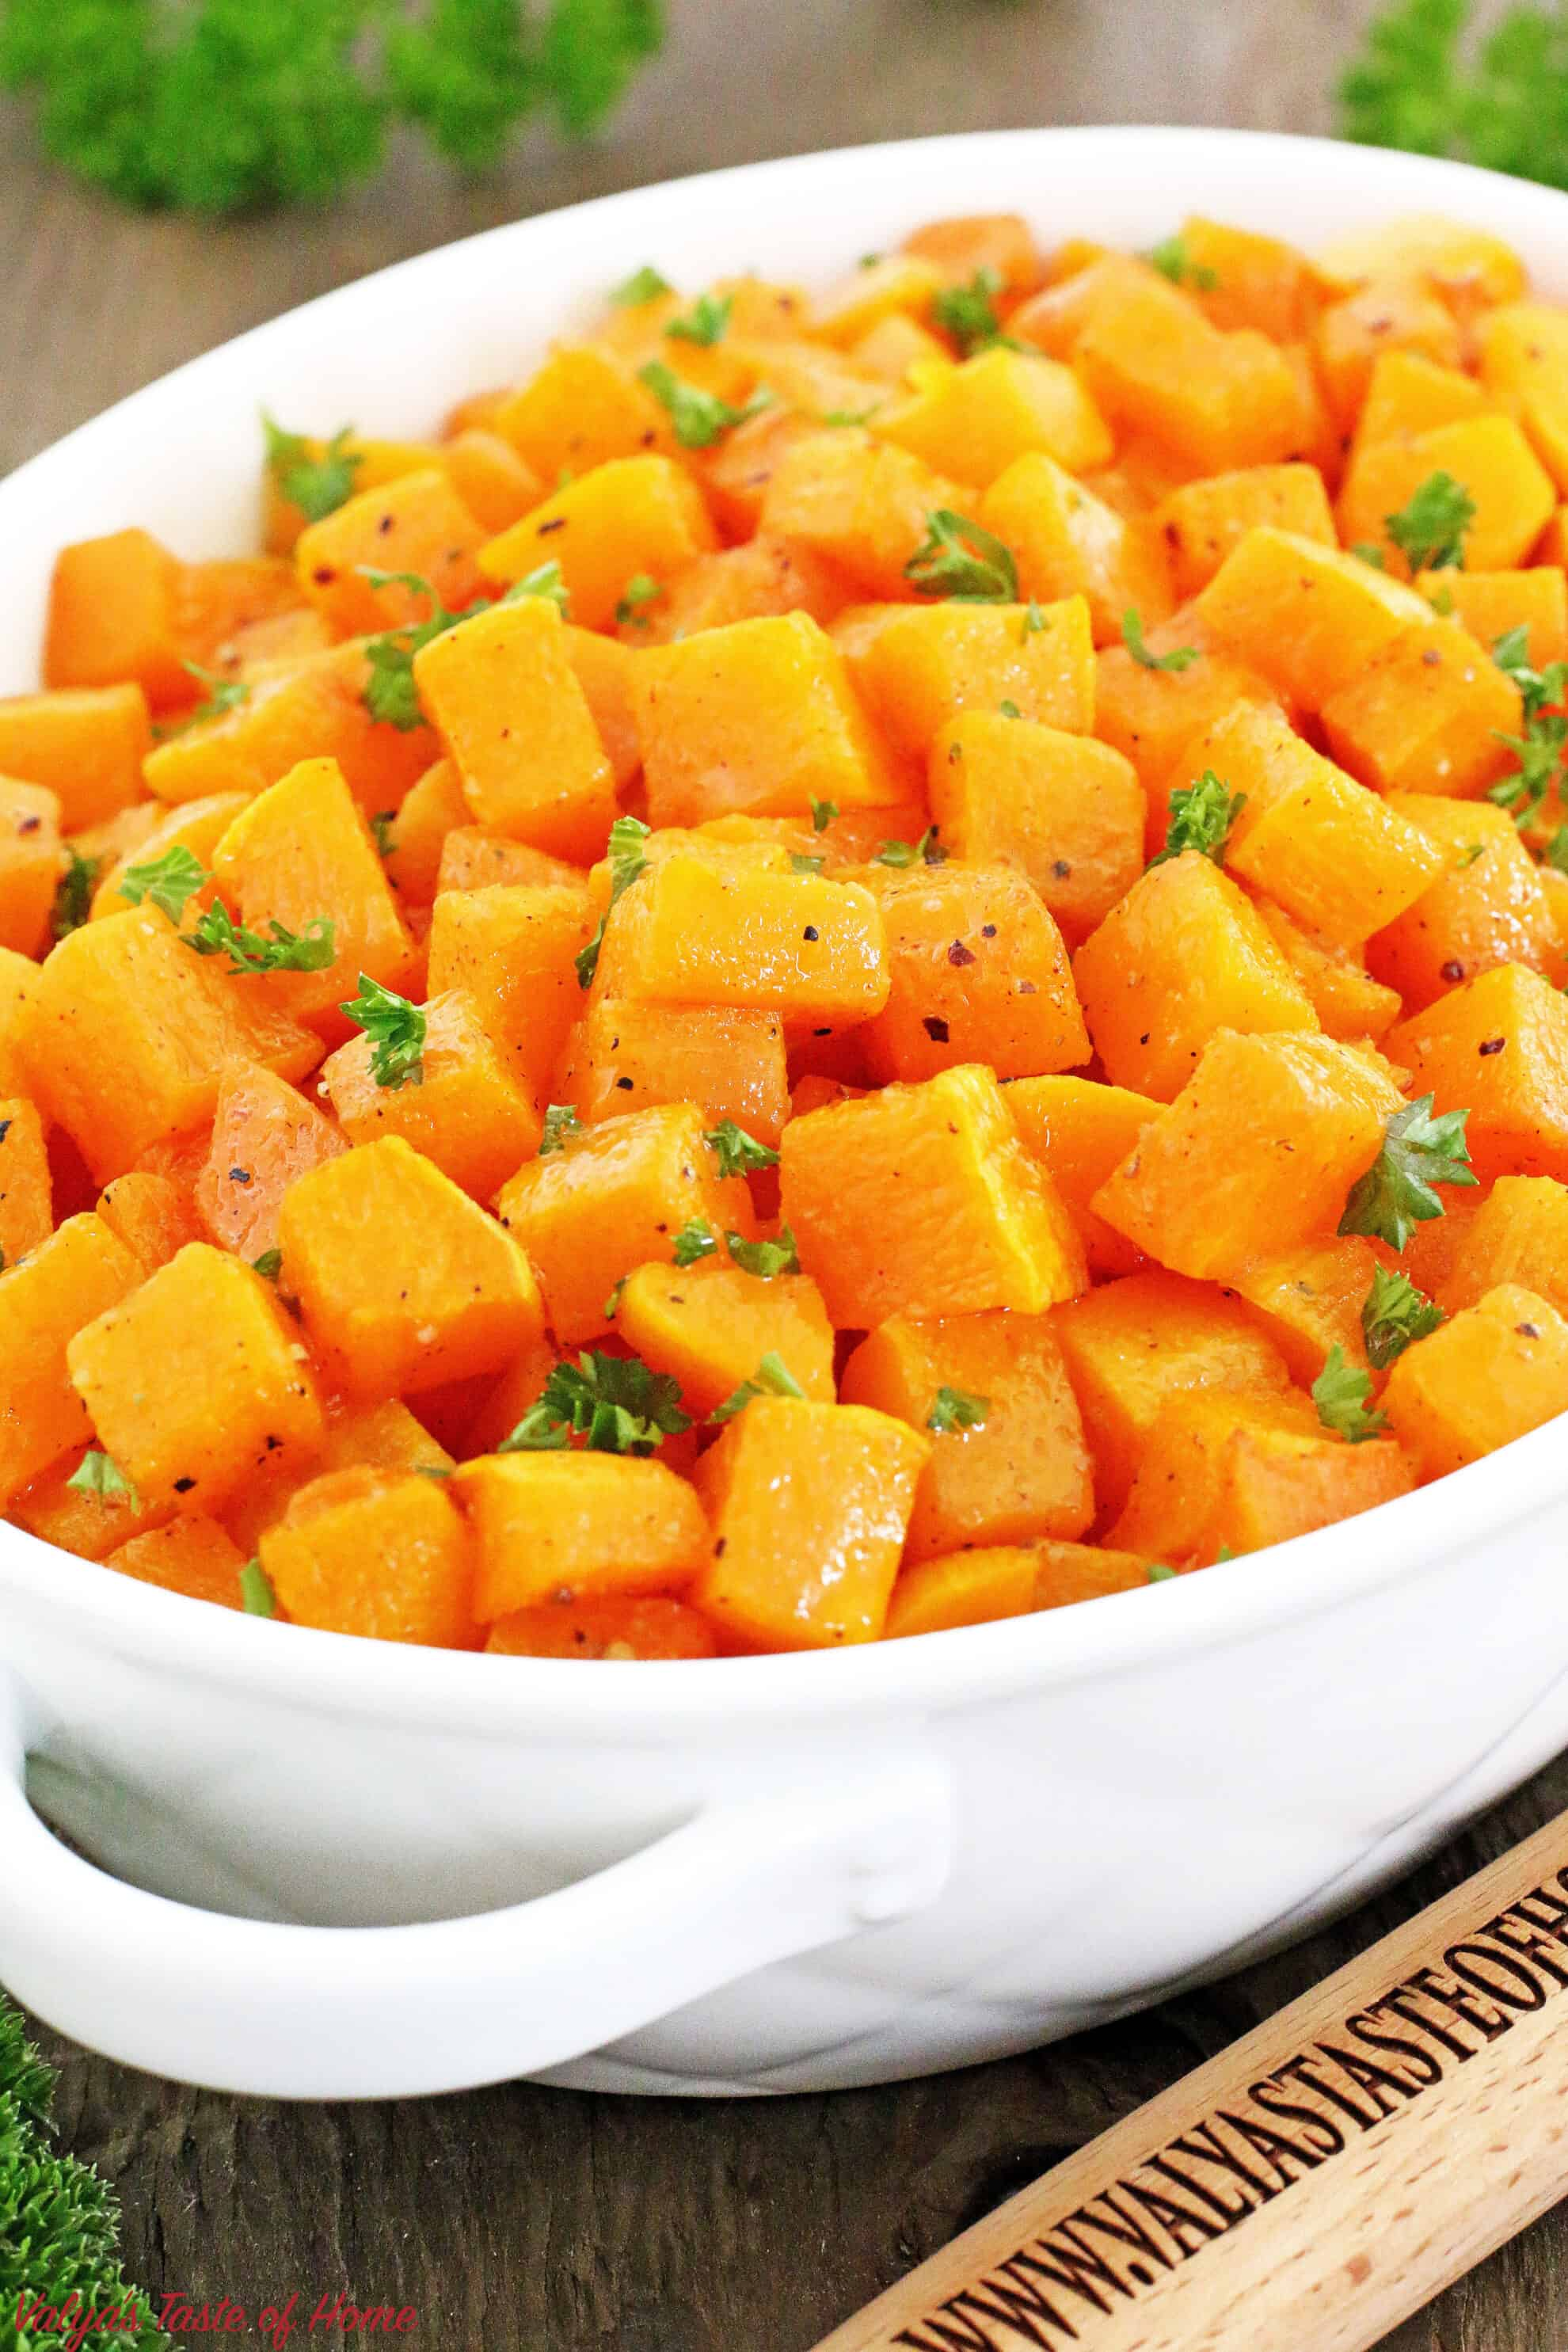 Easy Roasted Butternut Squash Recipe is very nutritious, tasty, and quick to make. Another fall staple, and a must-have at your Thanksgiving gathering. It's beautiful and deep color that matches the season to decorate your table, and it's delicious, smooth taste and texture.